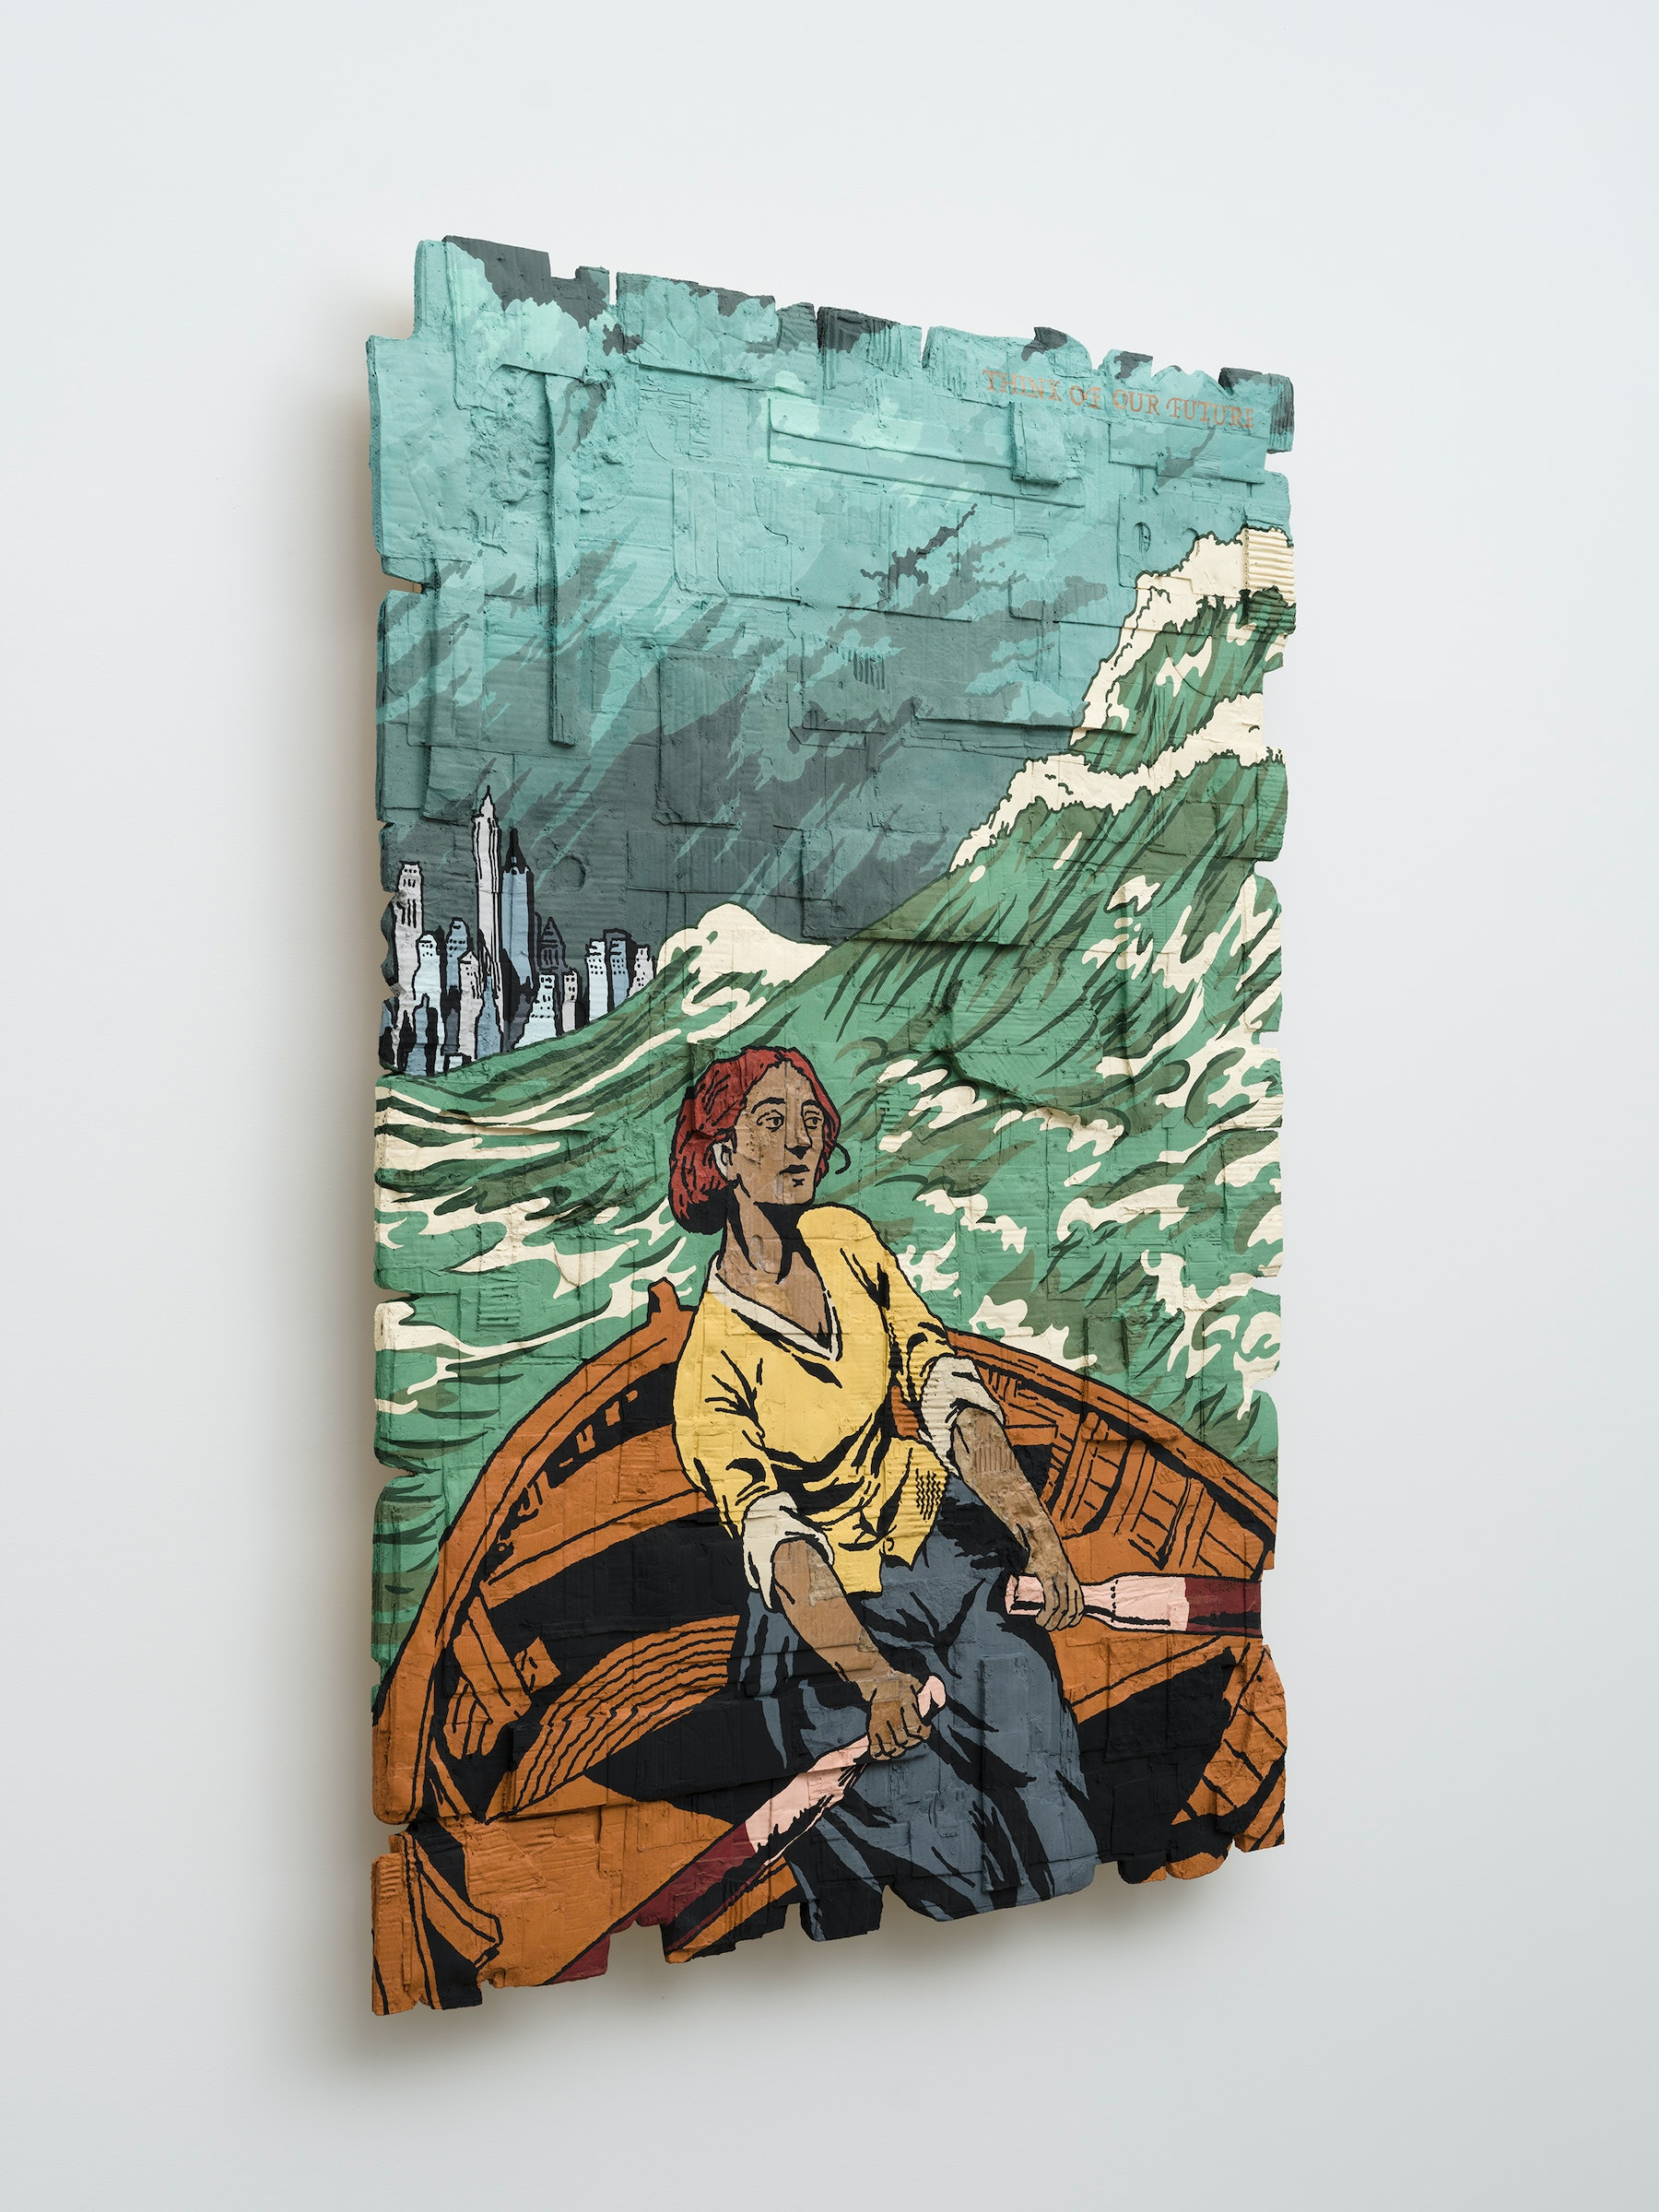 """Andrea Bowers """"Think of Our Future (Original Illustration, by Duncan Grant, Poster Published by the Artists' Suffrage League, Hentschel Ltd., 1909),"""" 2021 Acrylic marker on cardboard 72"""" x 52 ¹⁄₂"""" x 4 ¹⁄₂"""" [HxWxD] (182.88 x 133.35 x 11.43 cm) Inventory #BOW539 Courtesy of the artist and Vielmetter Los Angeles Photo credit: Jeff McLane"""